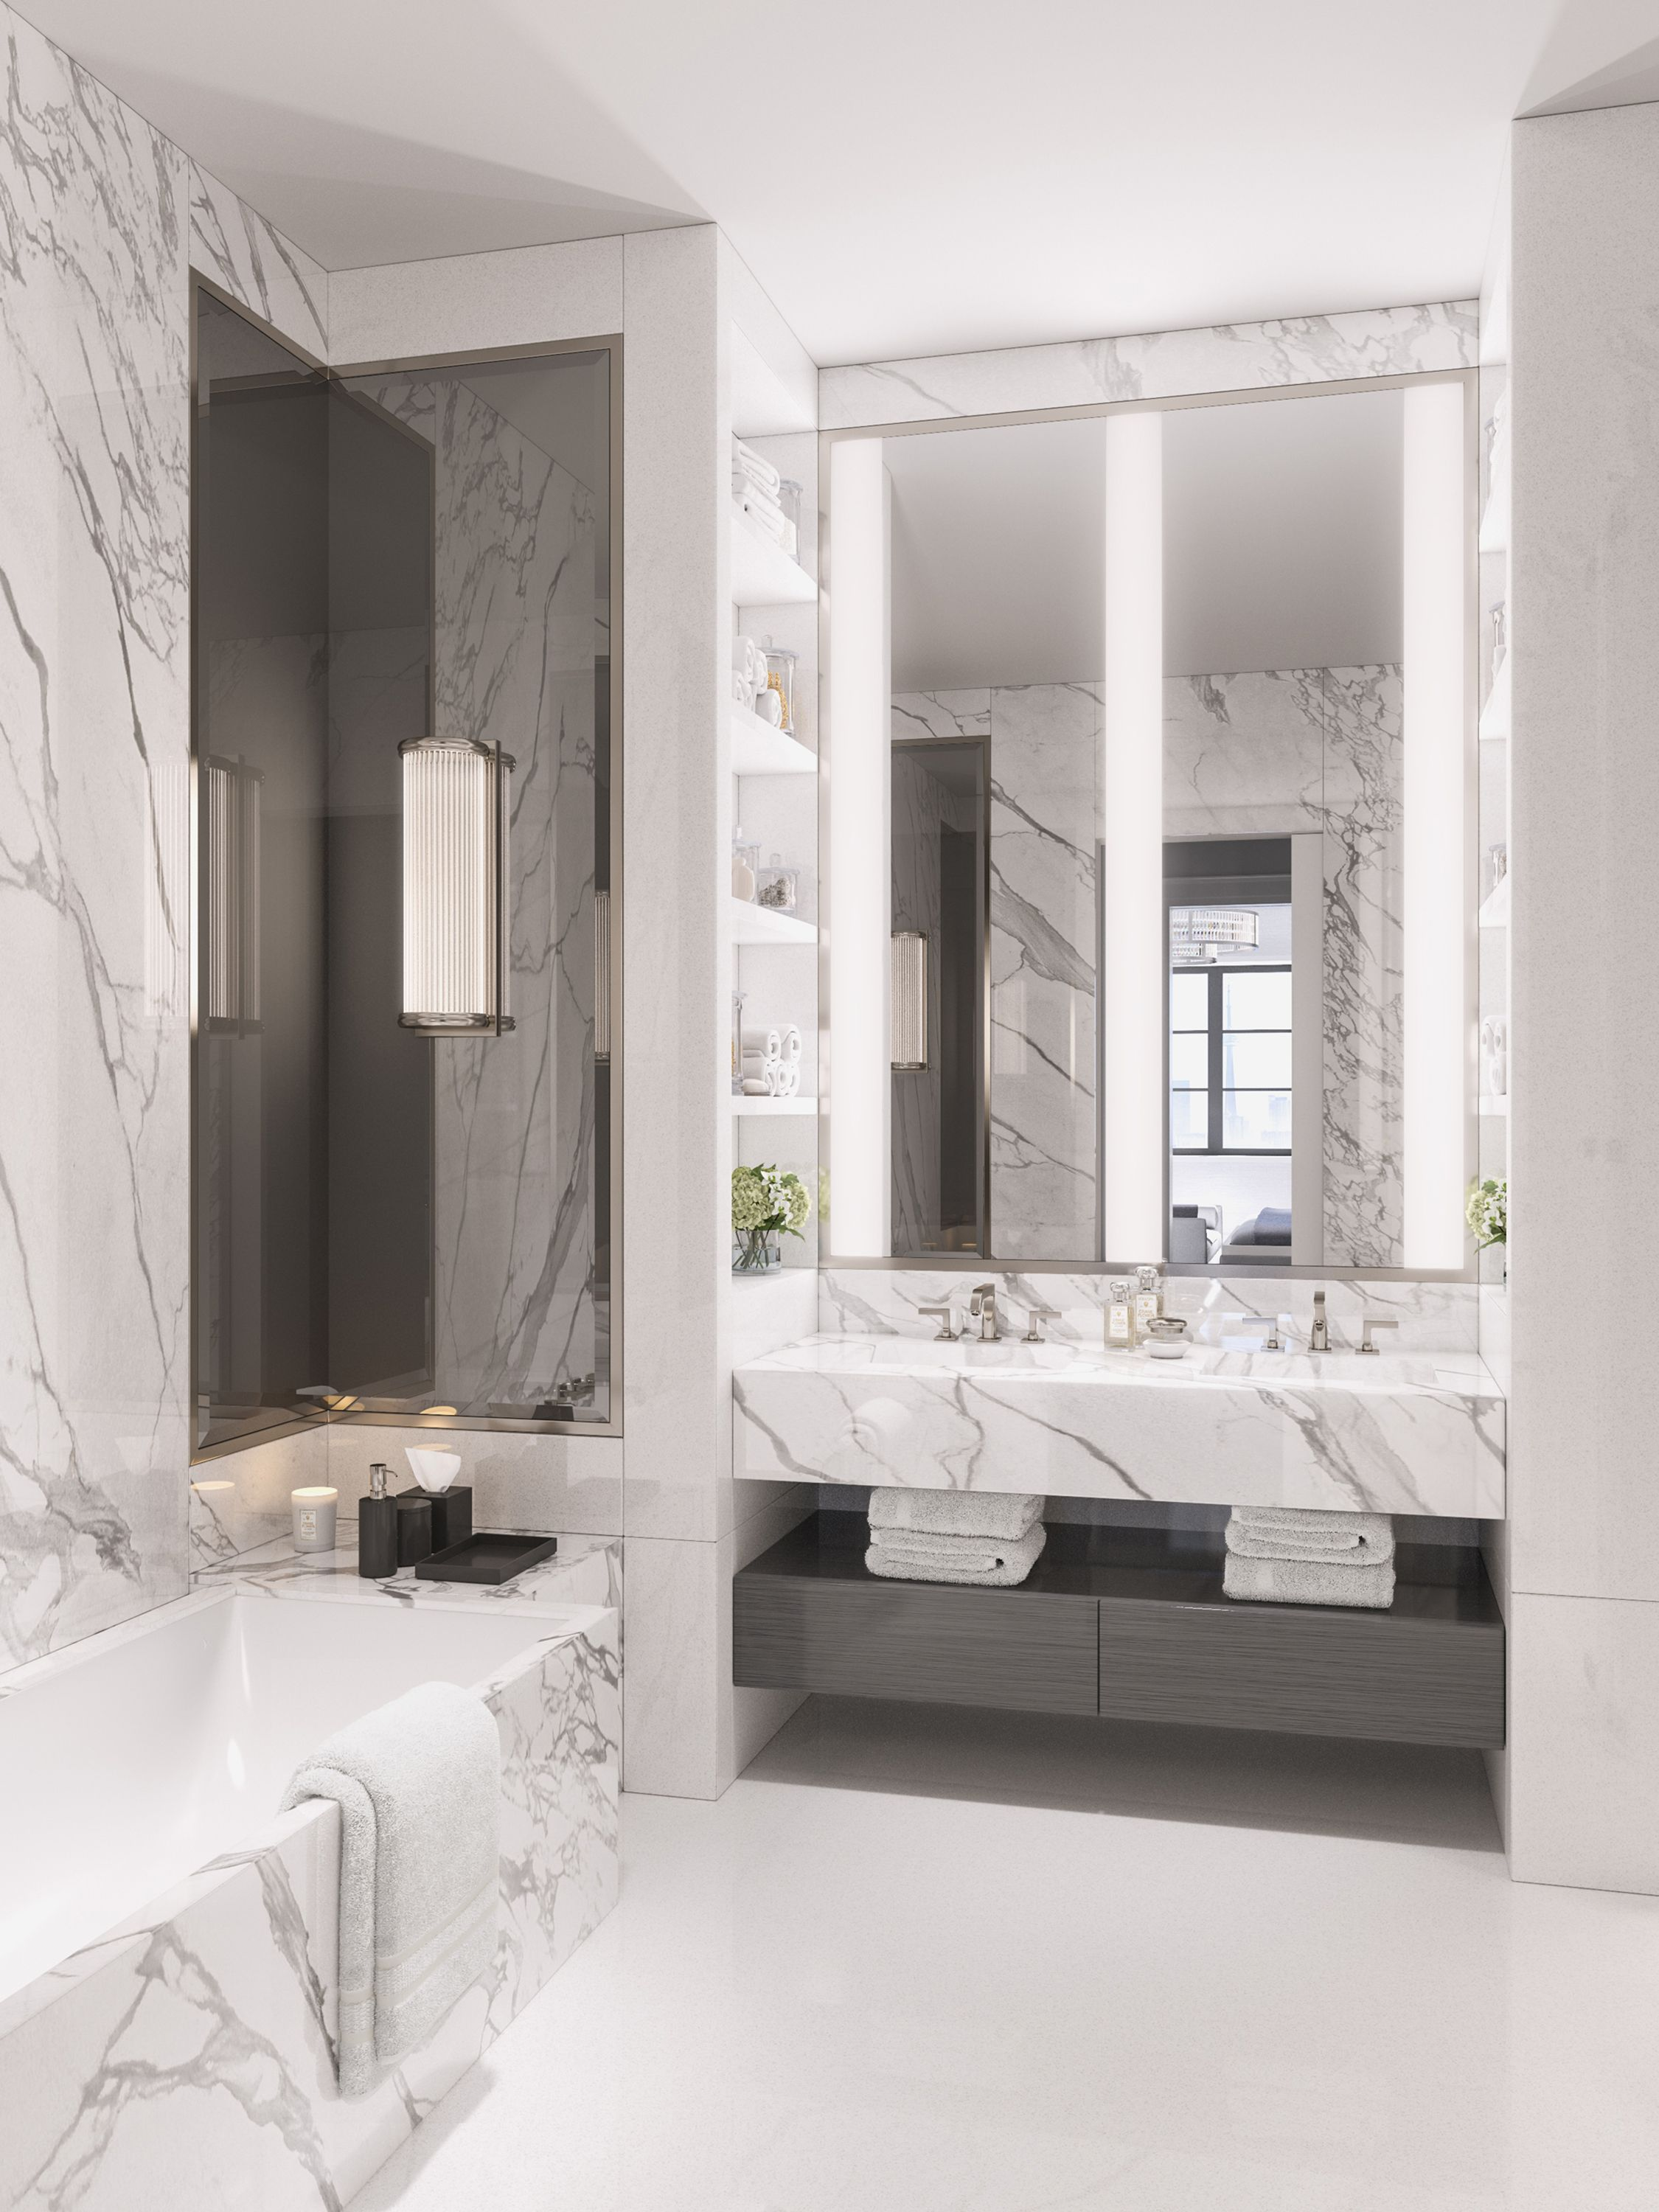 Elicyon Designed The Concept For This Five Bedroom Duplex Apartment Set In A Class In 2020 Modern Luxury Bathroom Luxury Bathroom Master Baths Bathroom Interior Design